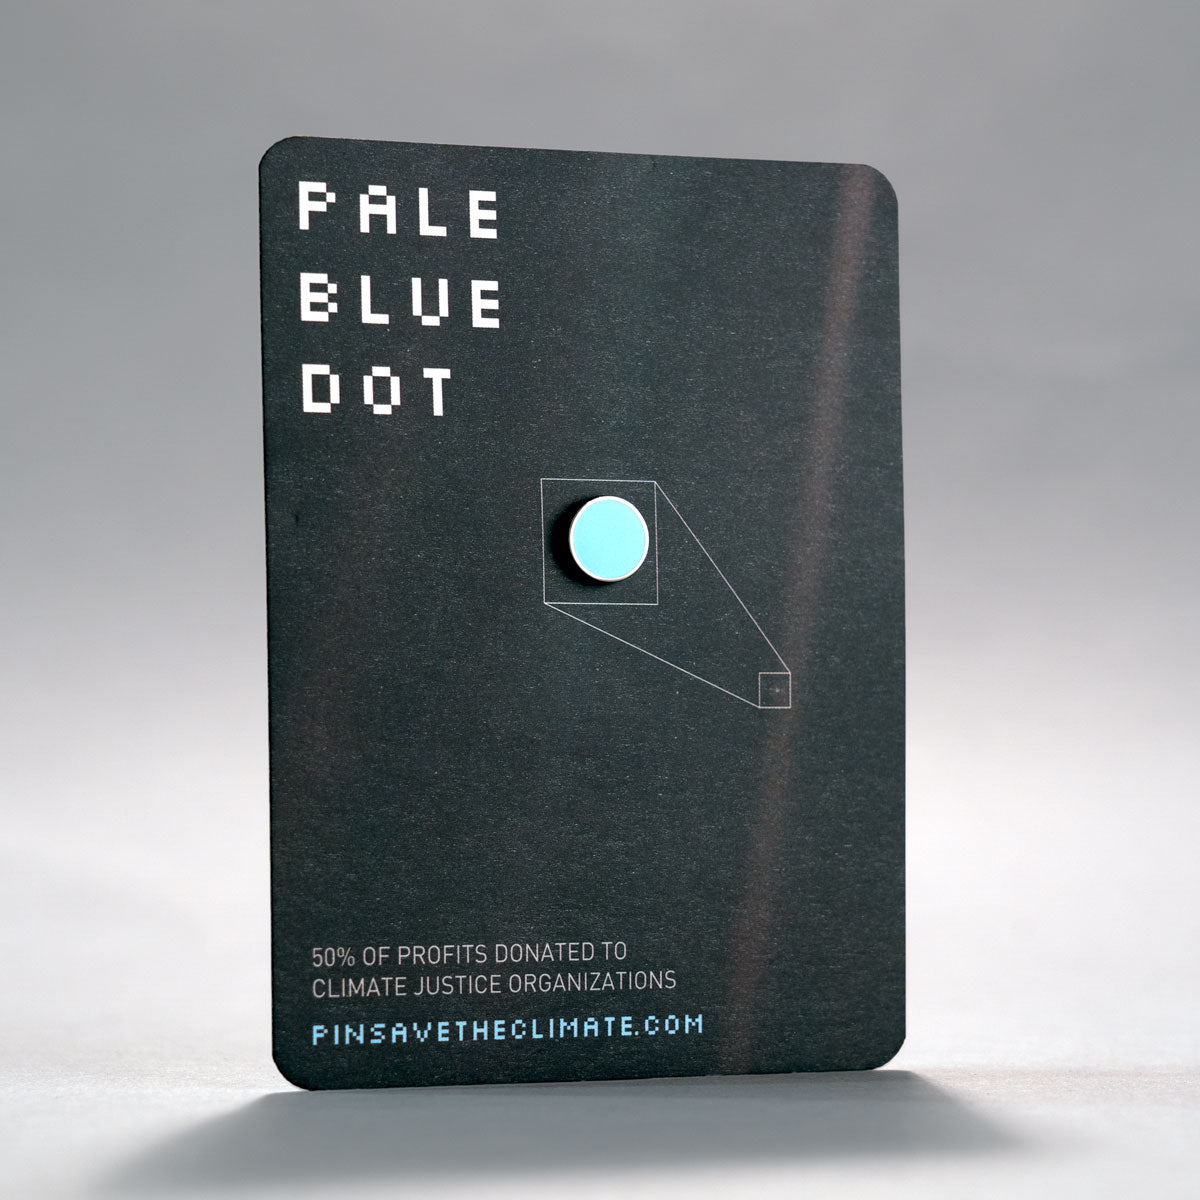 carl sagan inspired pale blue dot enamel lapel pin on backing card